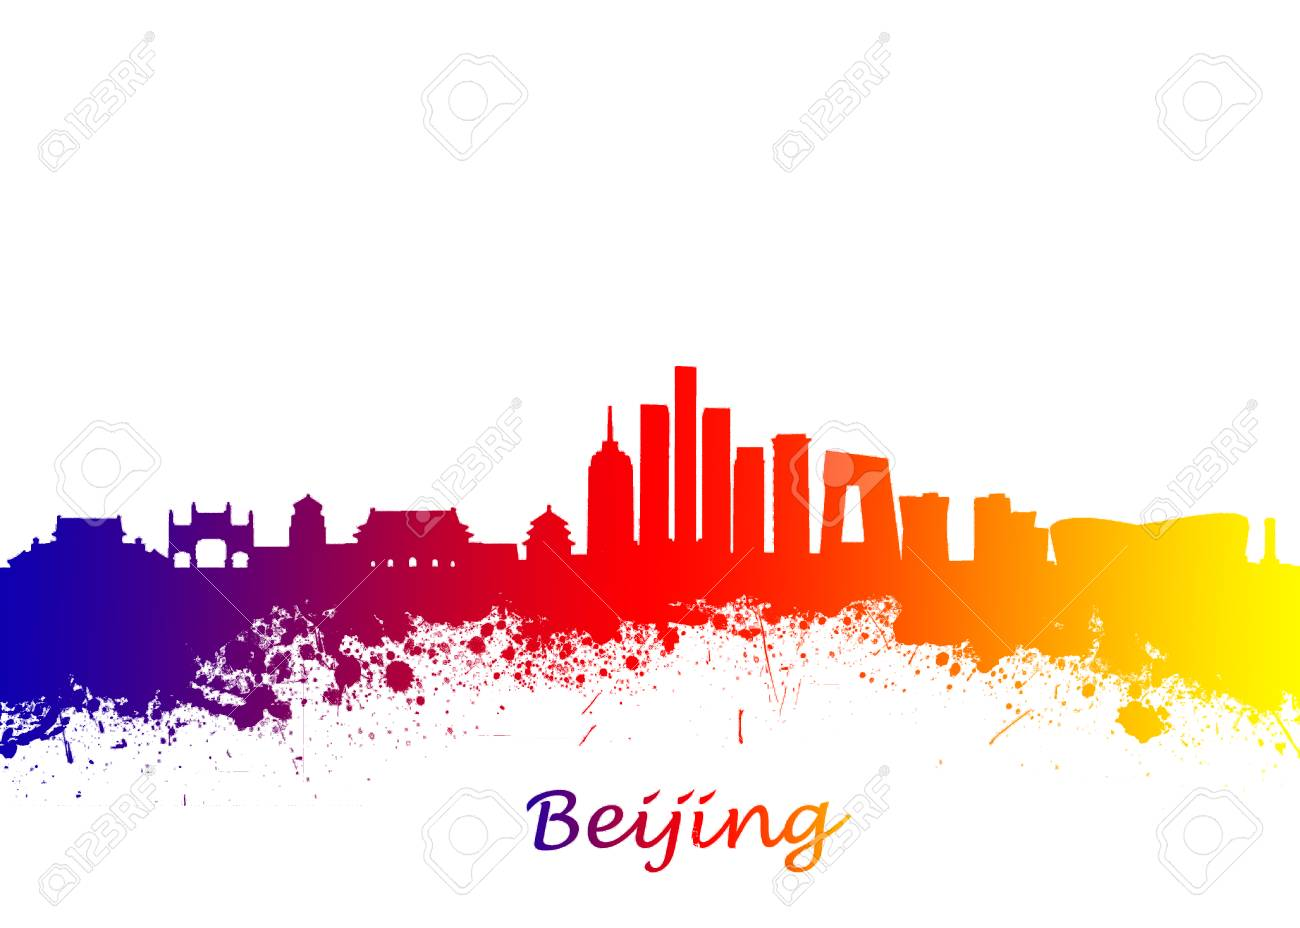 Watercolor Art Print Of The Skyline Beijing China Beautiful Wall Home Decor Canvas Prints Image Great Presentation In Both Corporate And Personal